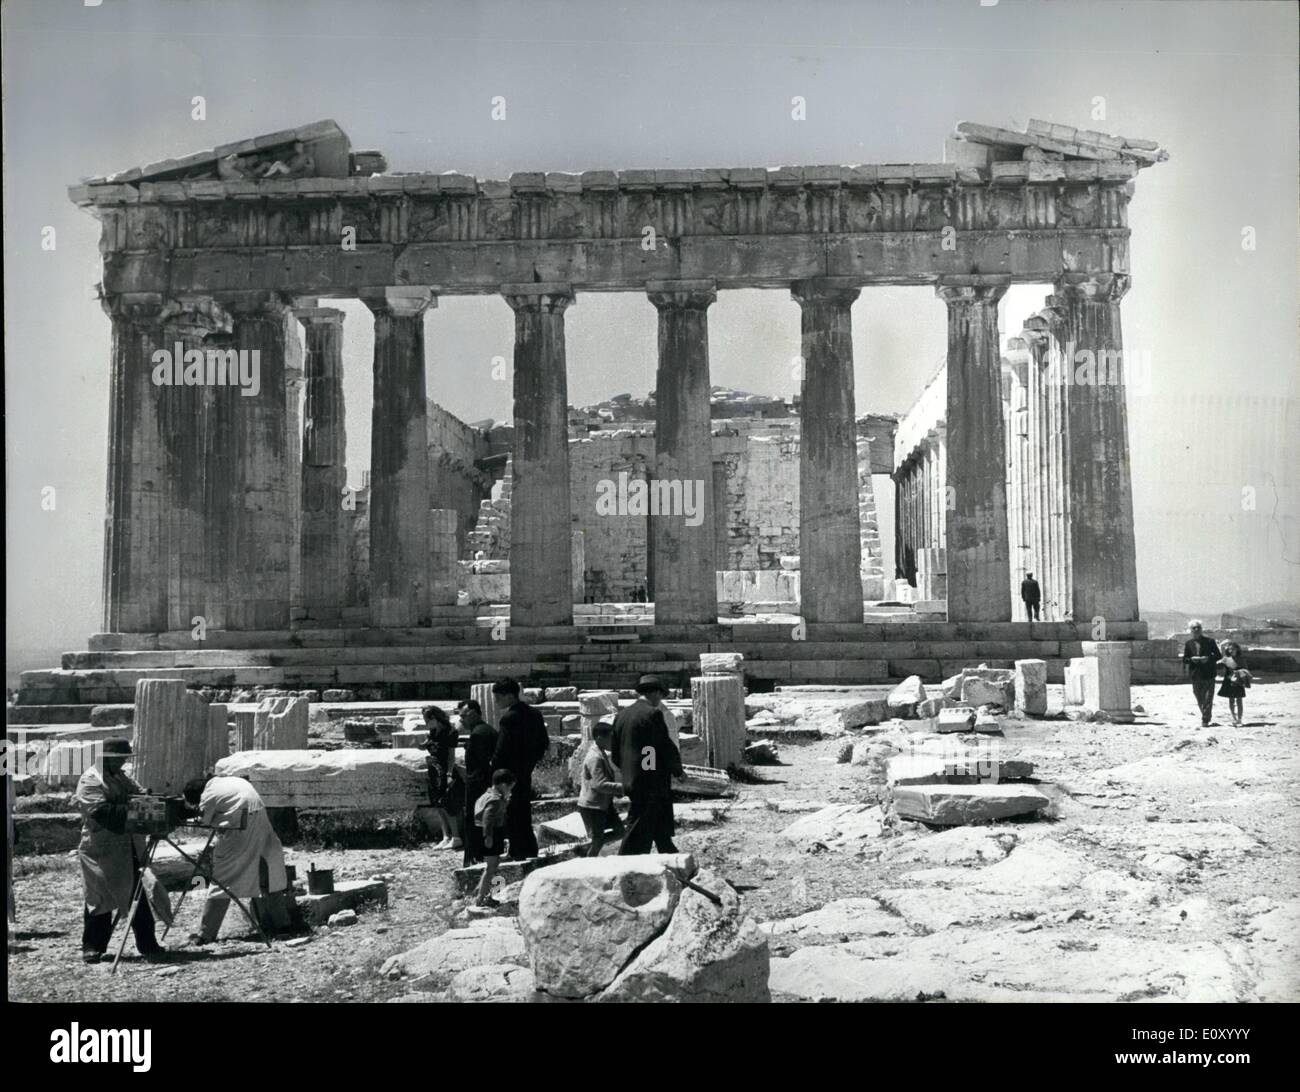 Feb. 02, 1968 - Parthenon columns in danger of Collapse.: Partly because of rusting steel supports, the marble columns of the Parthenon in Athens, are in danger of collapse. Before the First World War, whilst cruising in the Admiralty yacht Enchantress, Sir Winston Churchill was shocked to see the columns lying on the ground as they had been for years. He even considered sending for a party of bluejackets who,he thought, would soon have them upright. The Greek Government, not many years later, took the same view as Sir Winston. Now the columns are in danger of collapse again - Stock Image